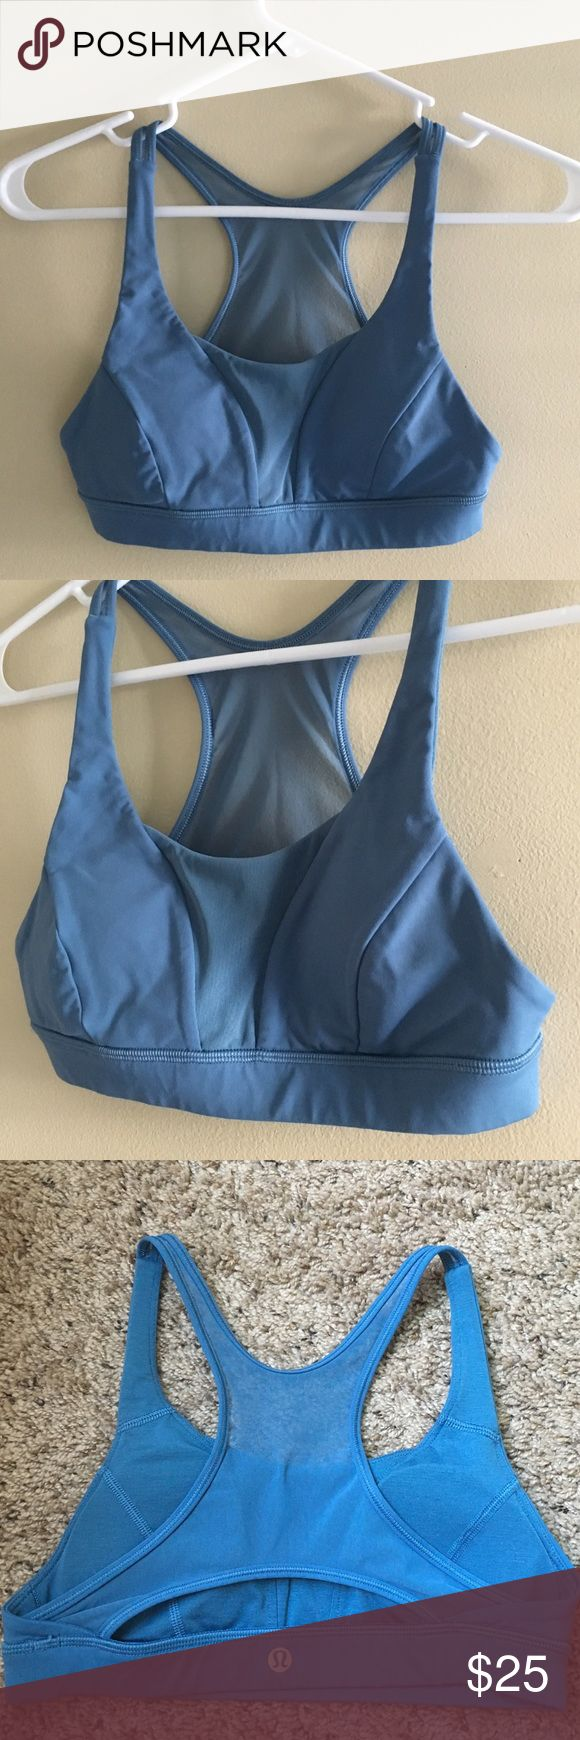 LULULEMON BLUE SPORTS BRA SIZE 4 Like New Lululemon Bra. Very comfy. Size 4. Mesh back. This bra is Light Blue. The stock photo used is only for style reference- not color. lululemon athletica Intimates & Sleepwear Bras